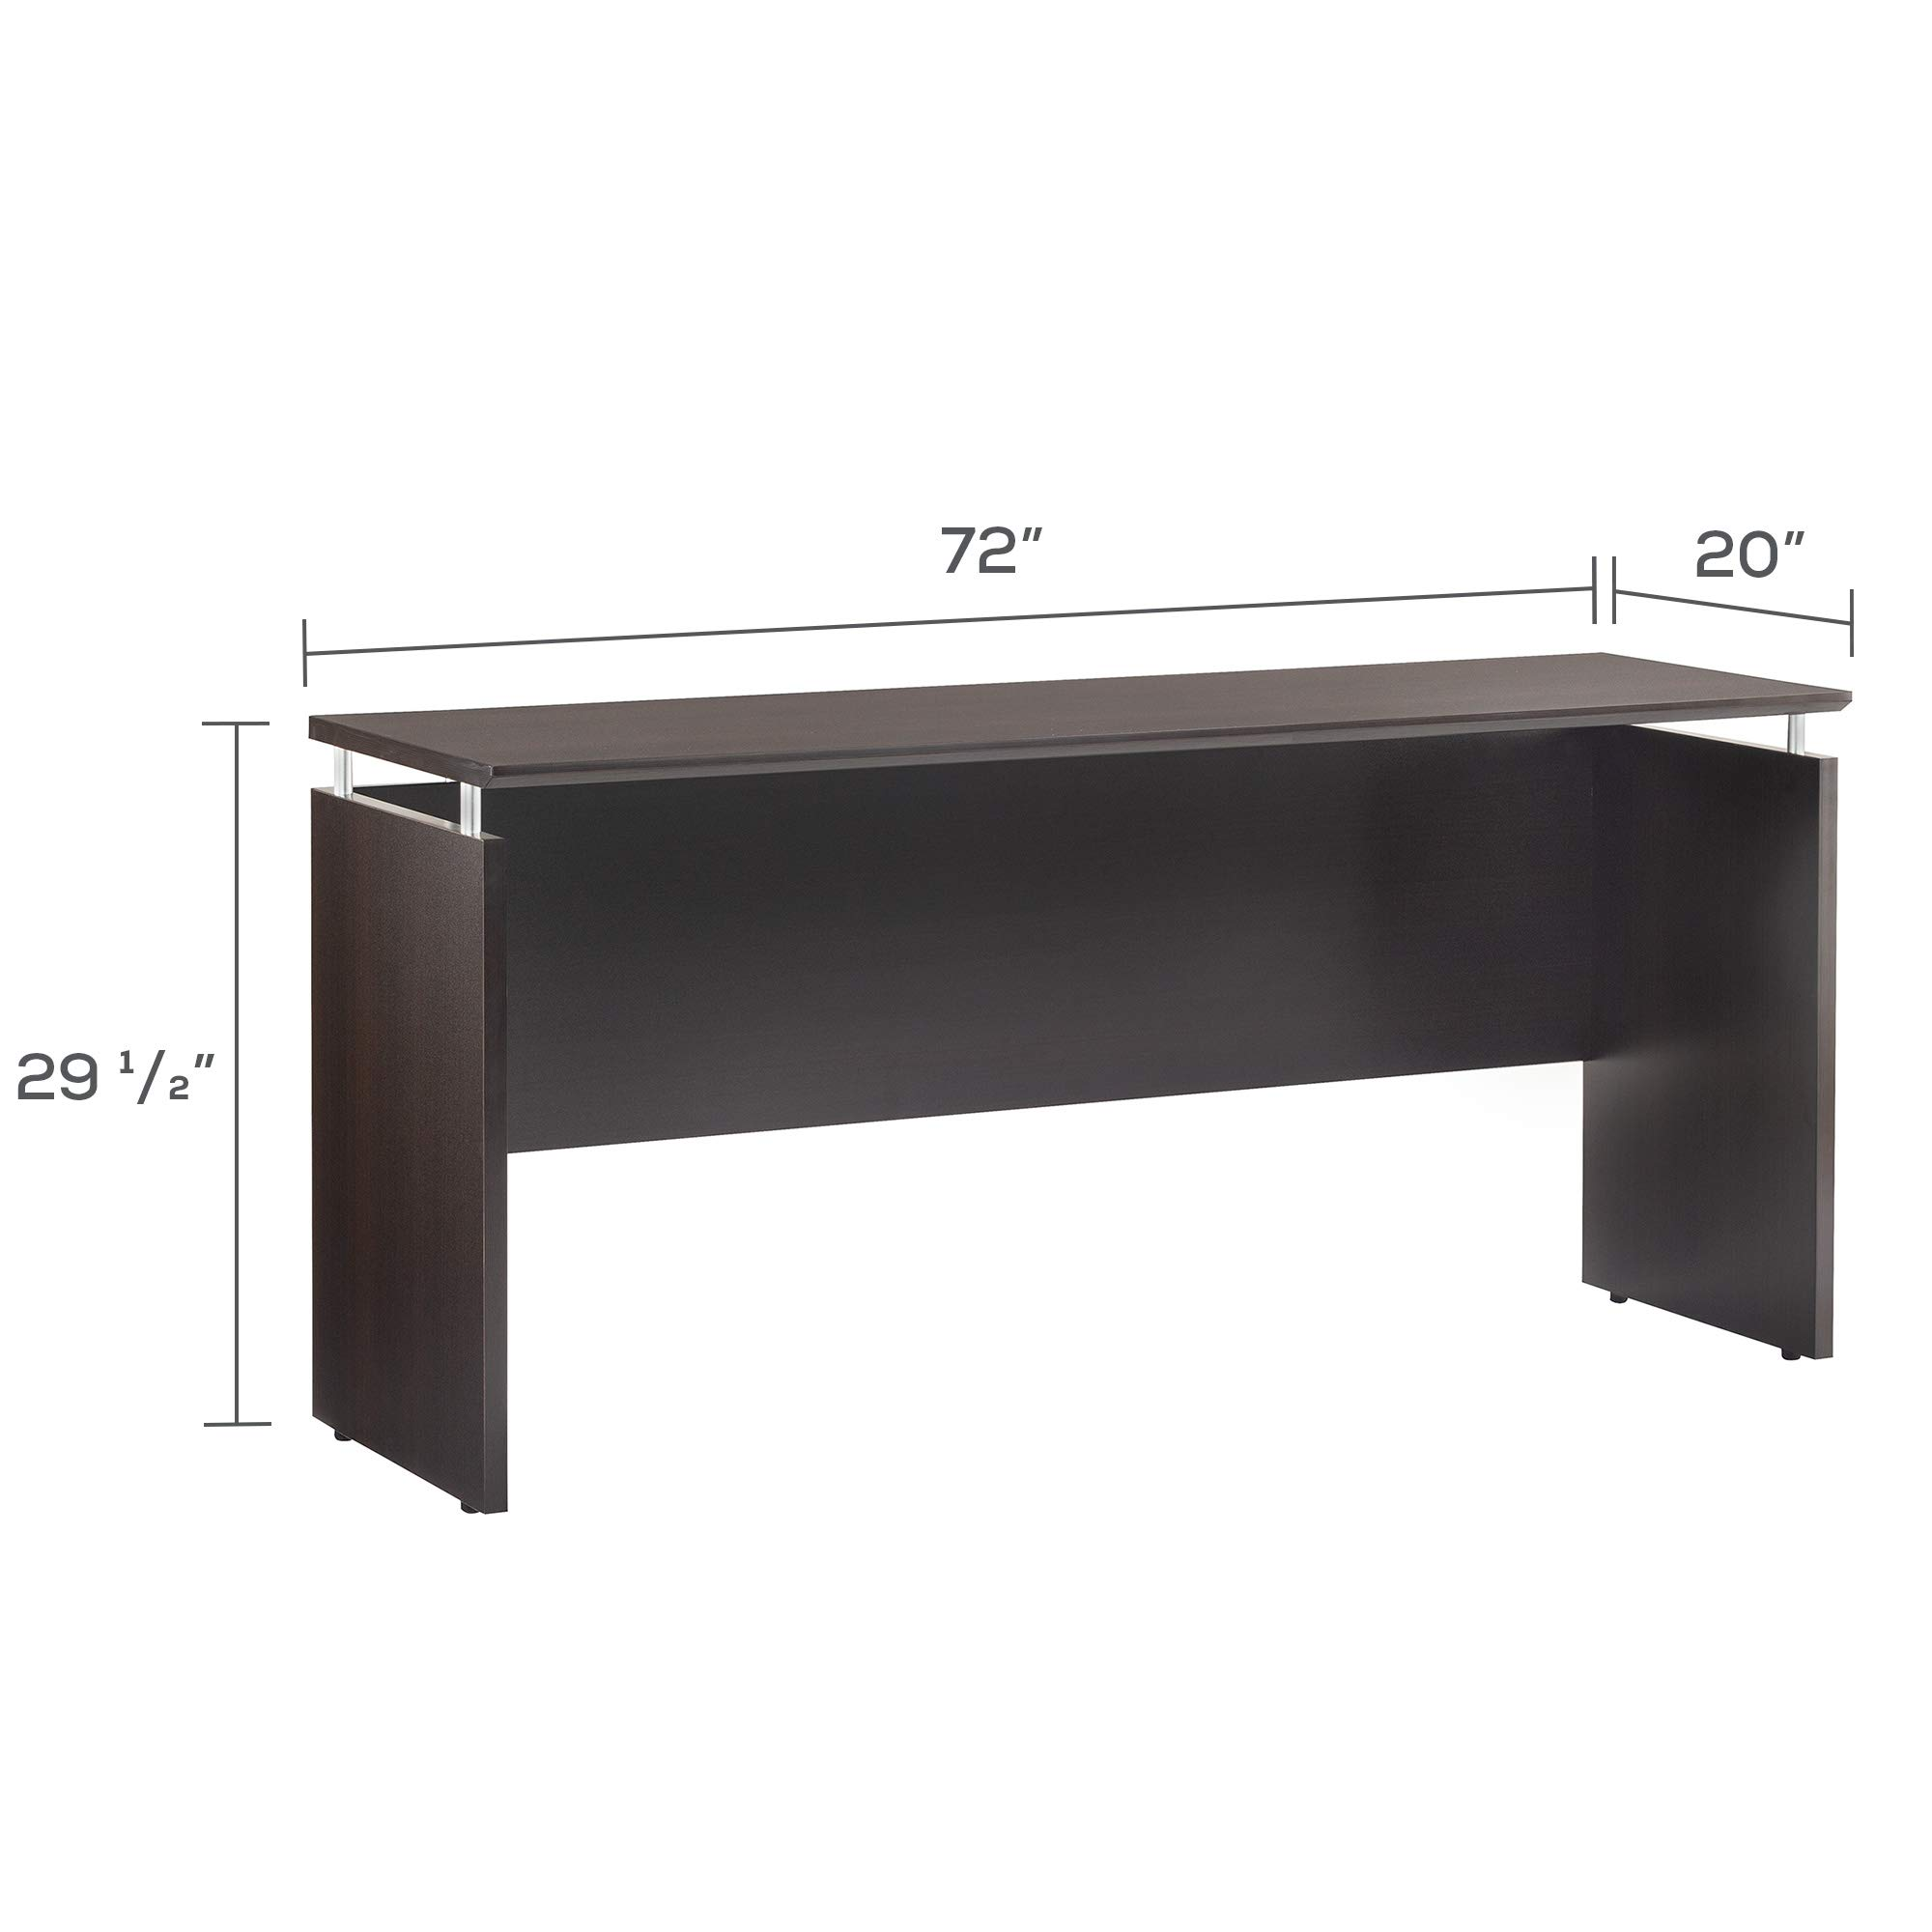 Safco Products MNCNZ72LDC Medina Credenza, 72'', Mocha by Safco Products (Image #3)